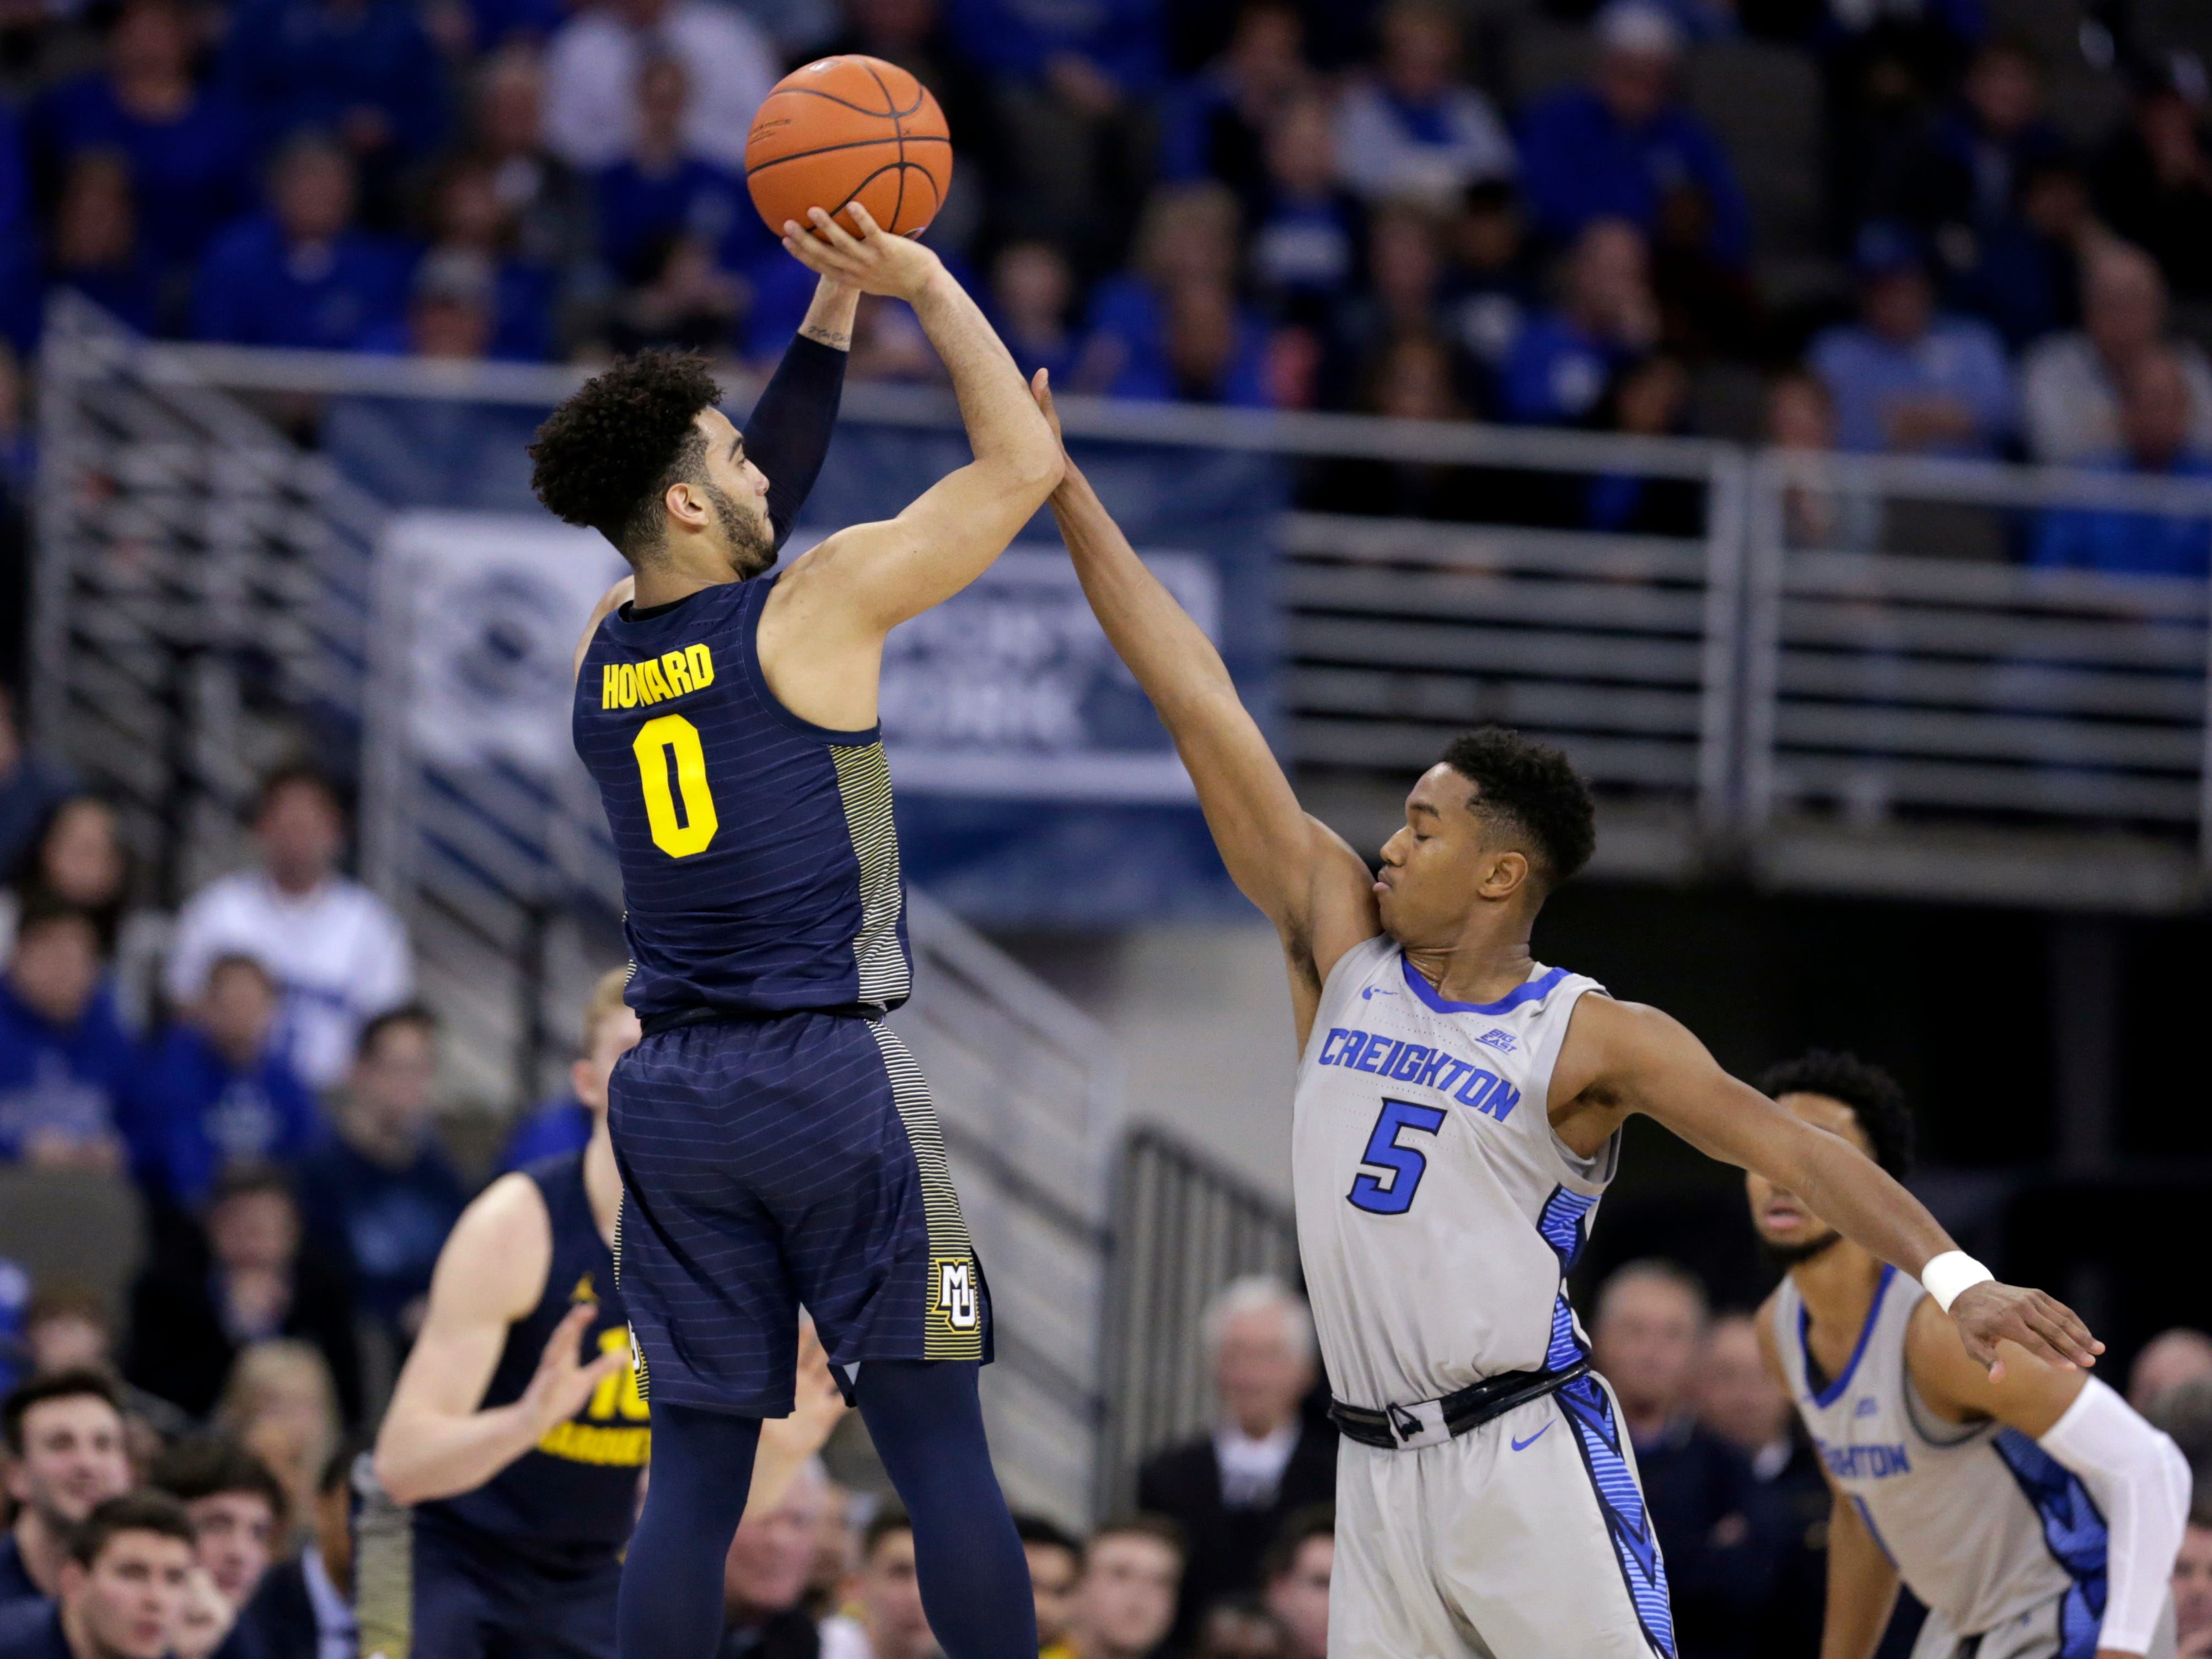 Marquette's Markus Howard launches a three-pointer over Creighton's Ty-ShonAlexander during the second half Wednesday night.